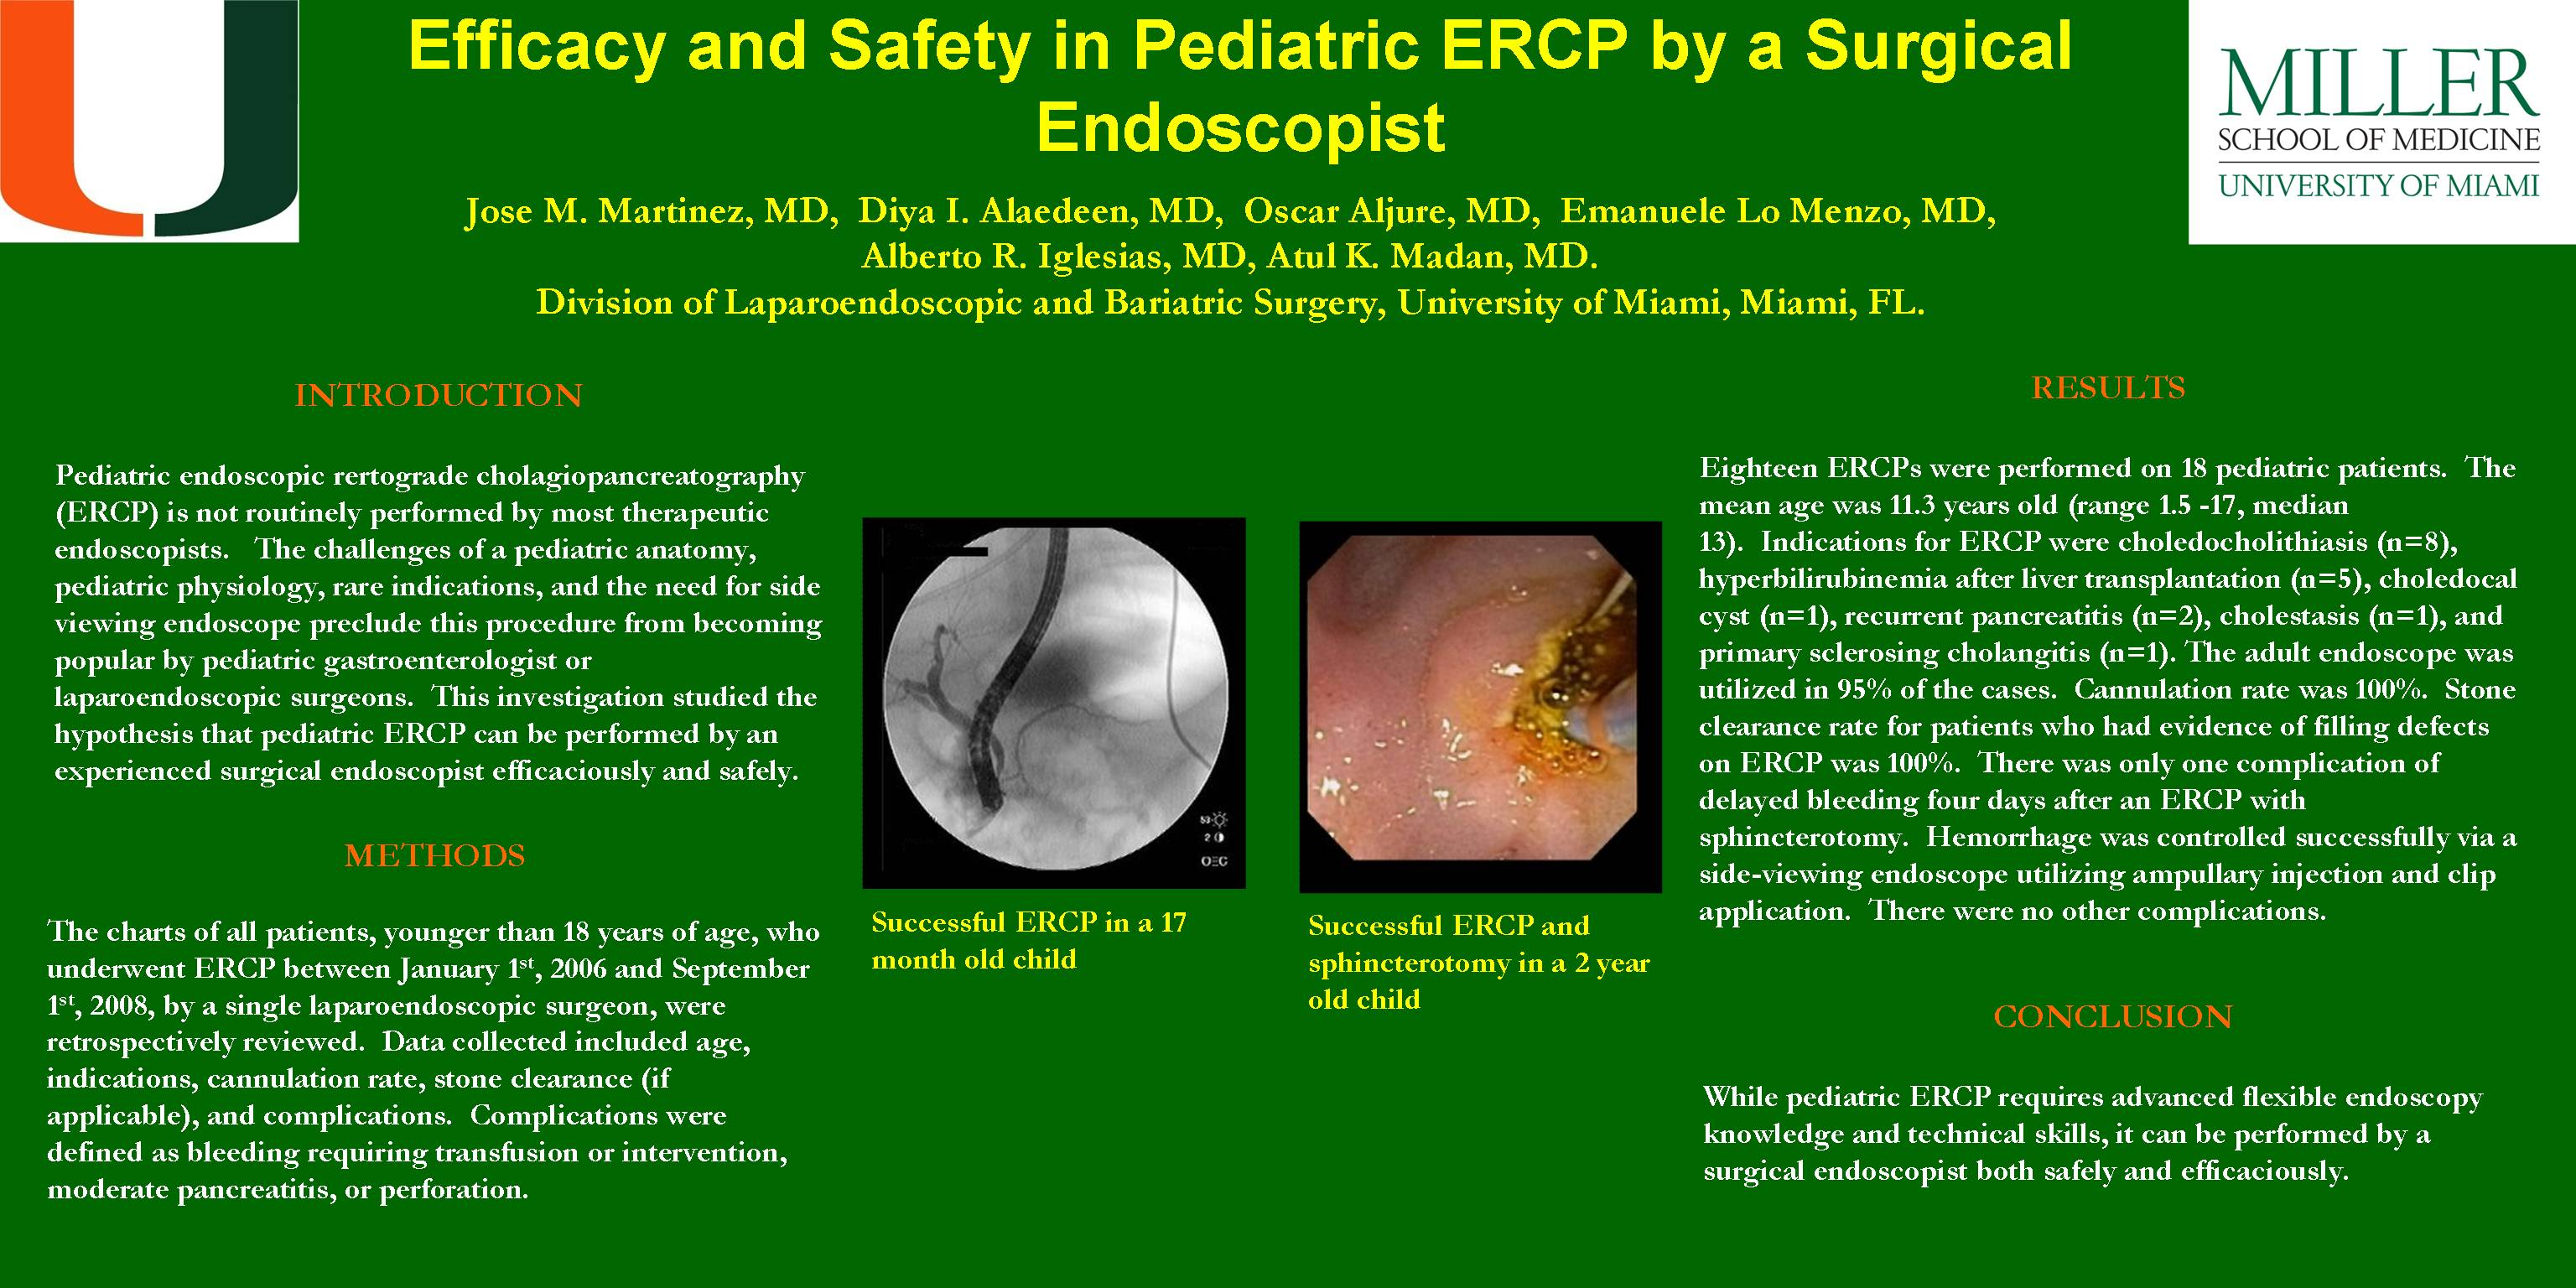 Efficacy and Safety in Pediatric ERCP By a Surgical